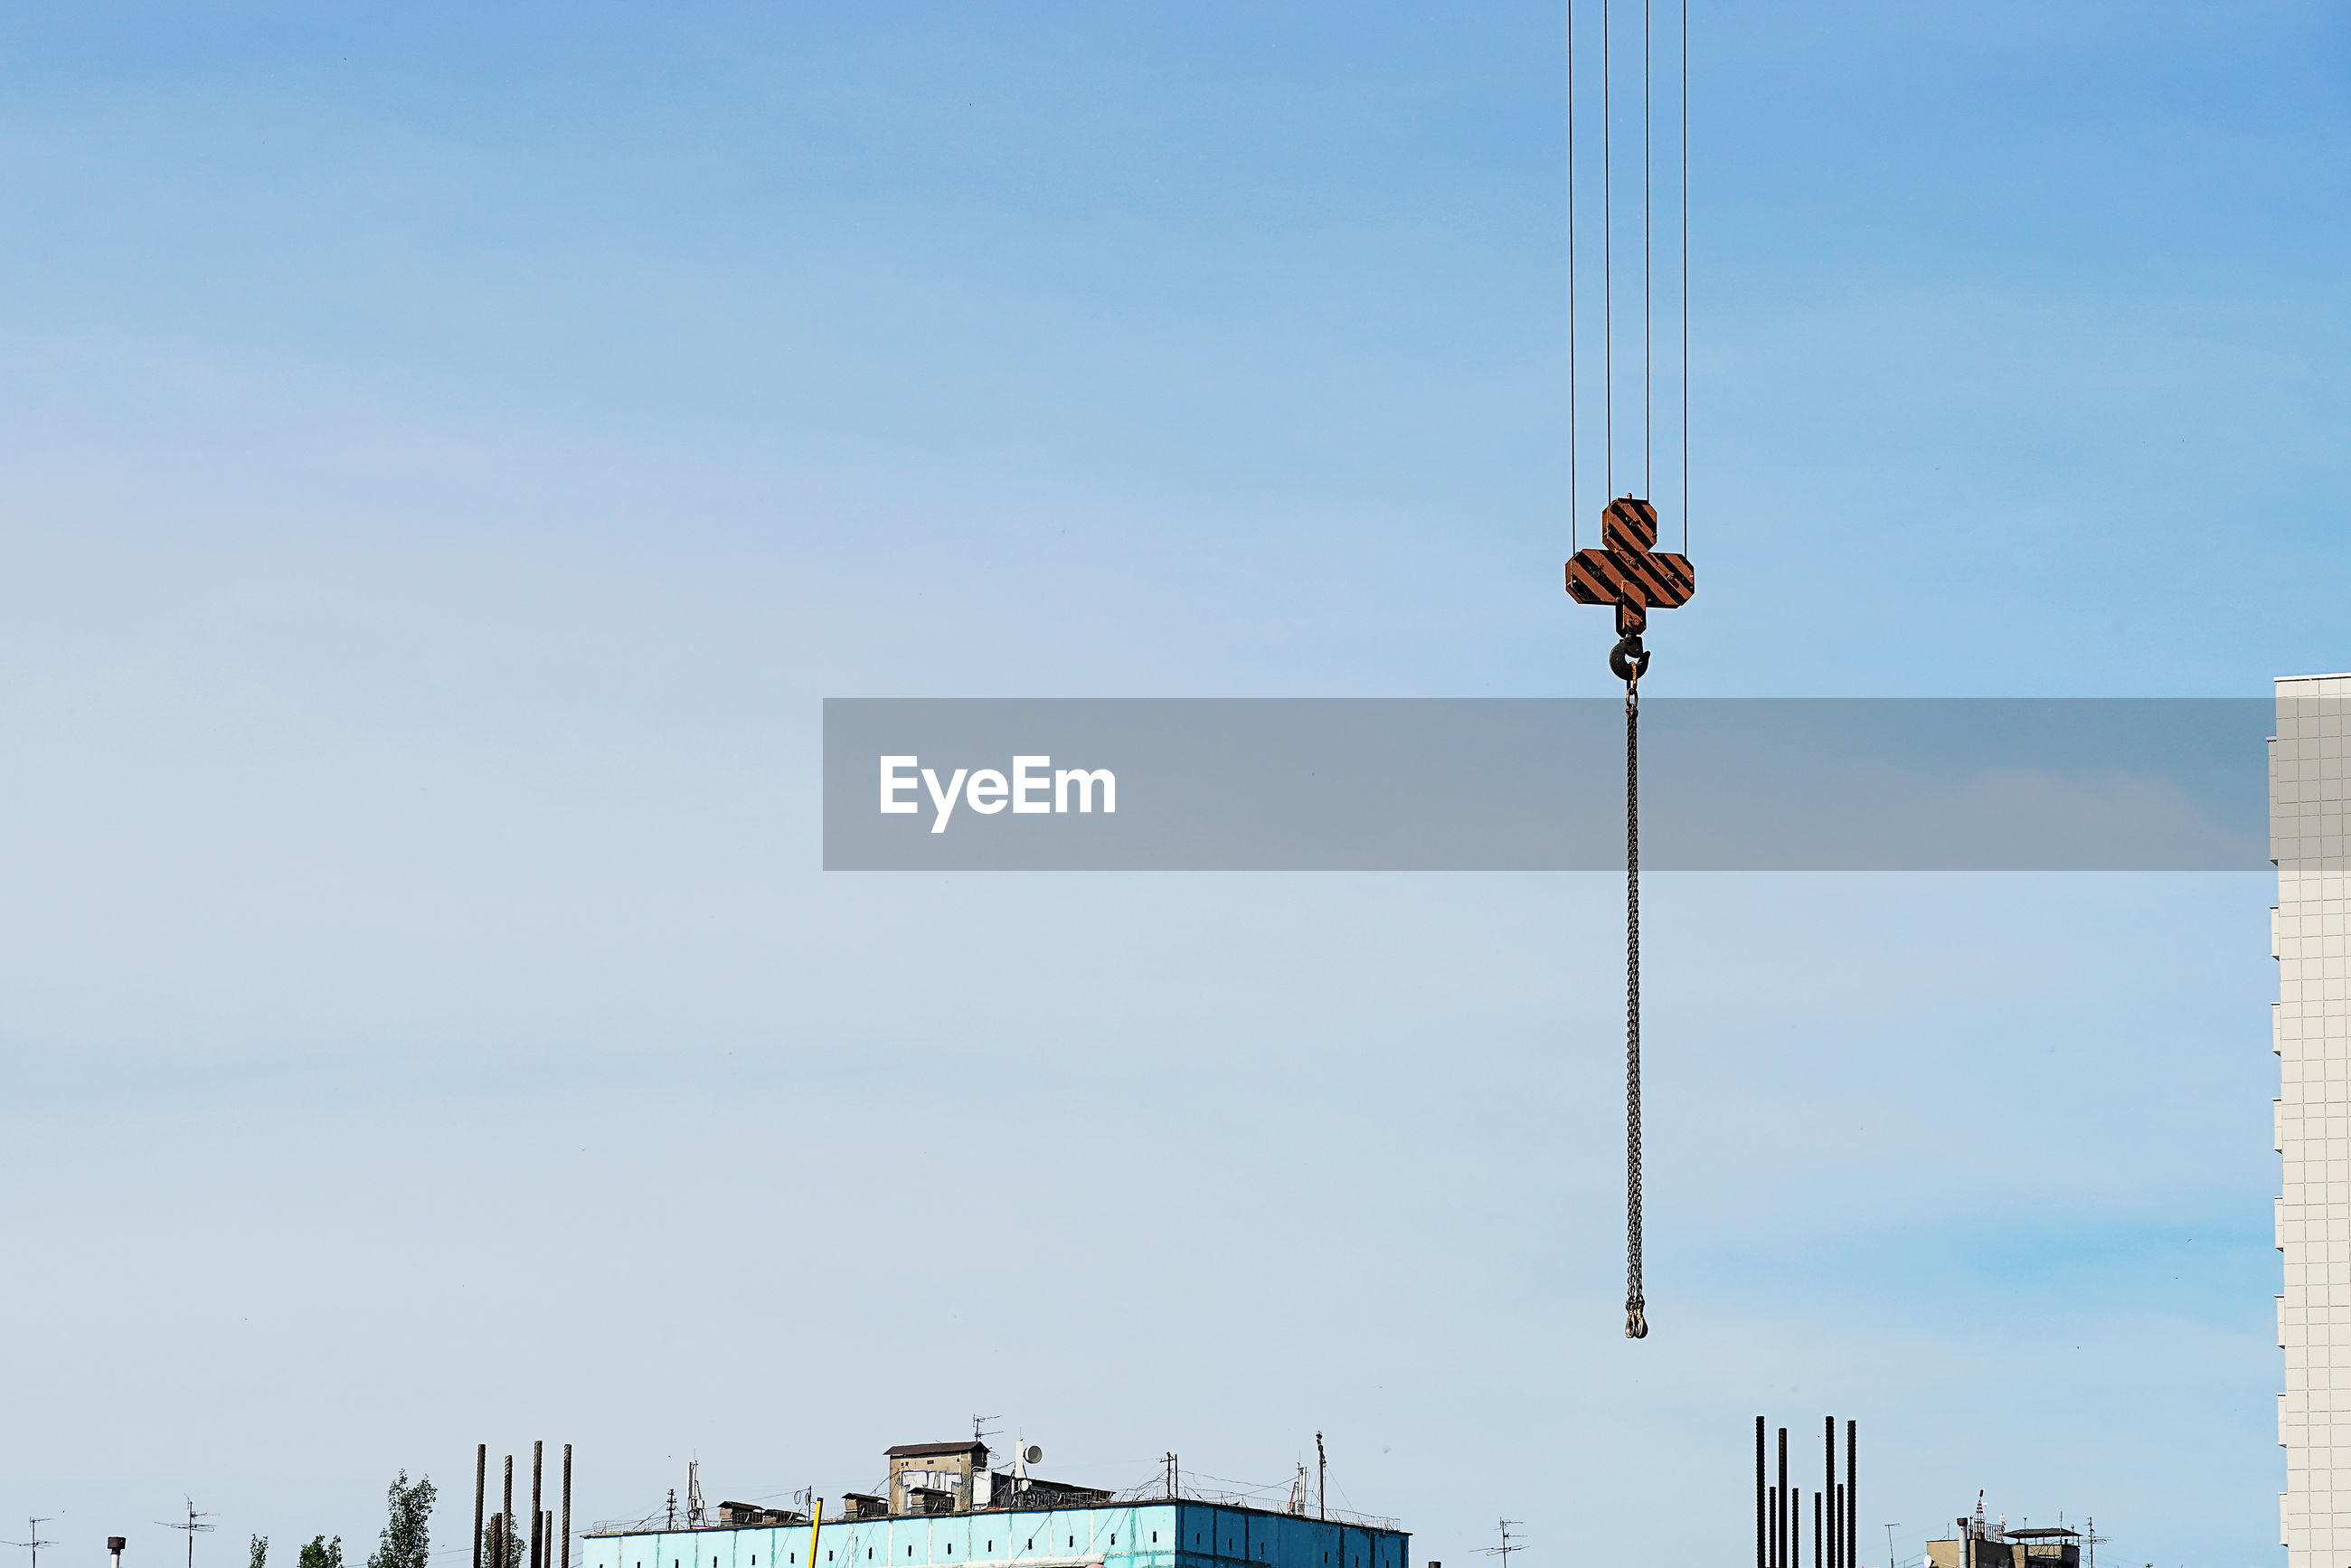 LOW ANGLE VIEW OF BIRD ON POLE AGAINST SKY